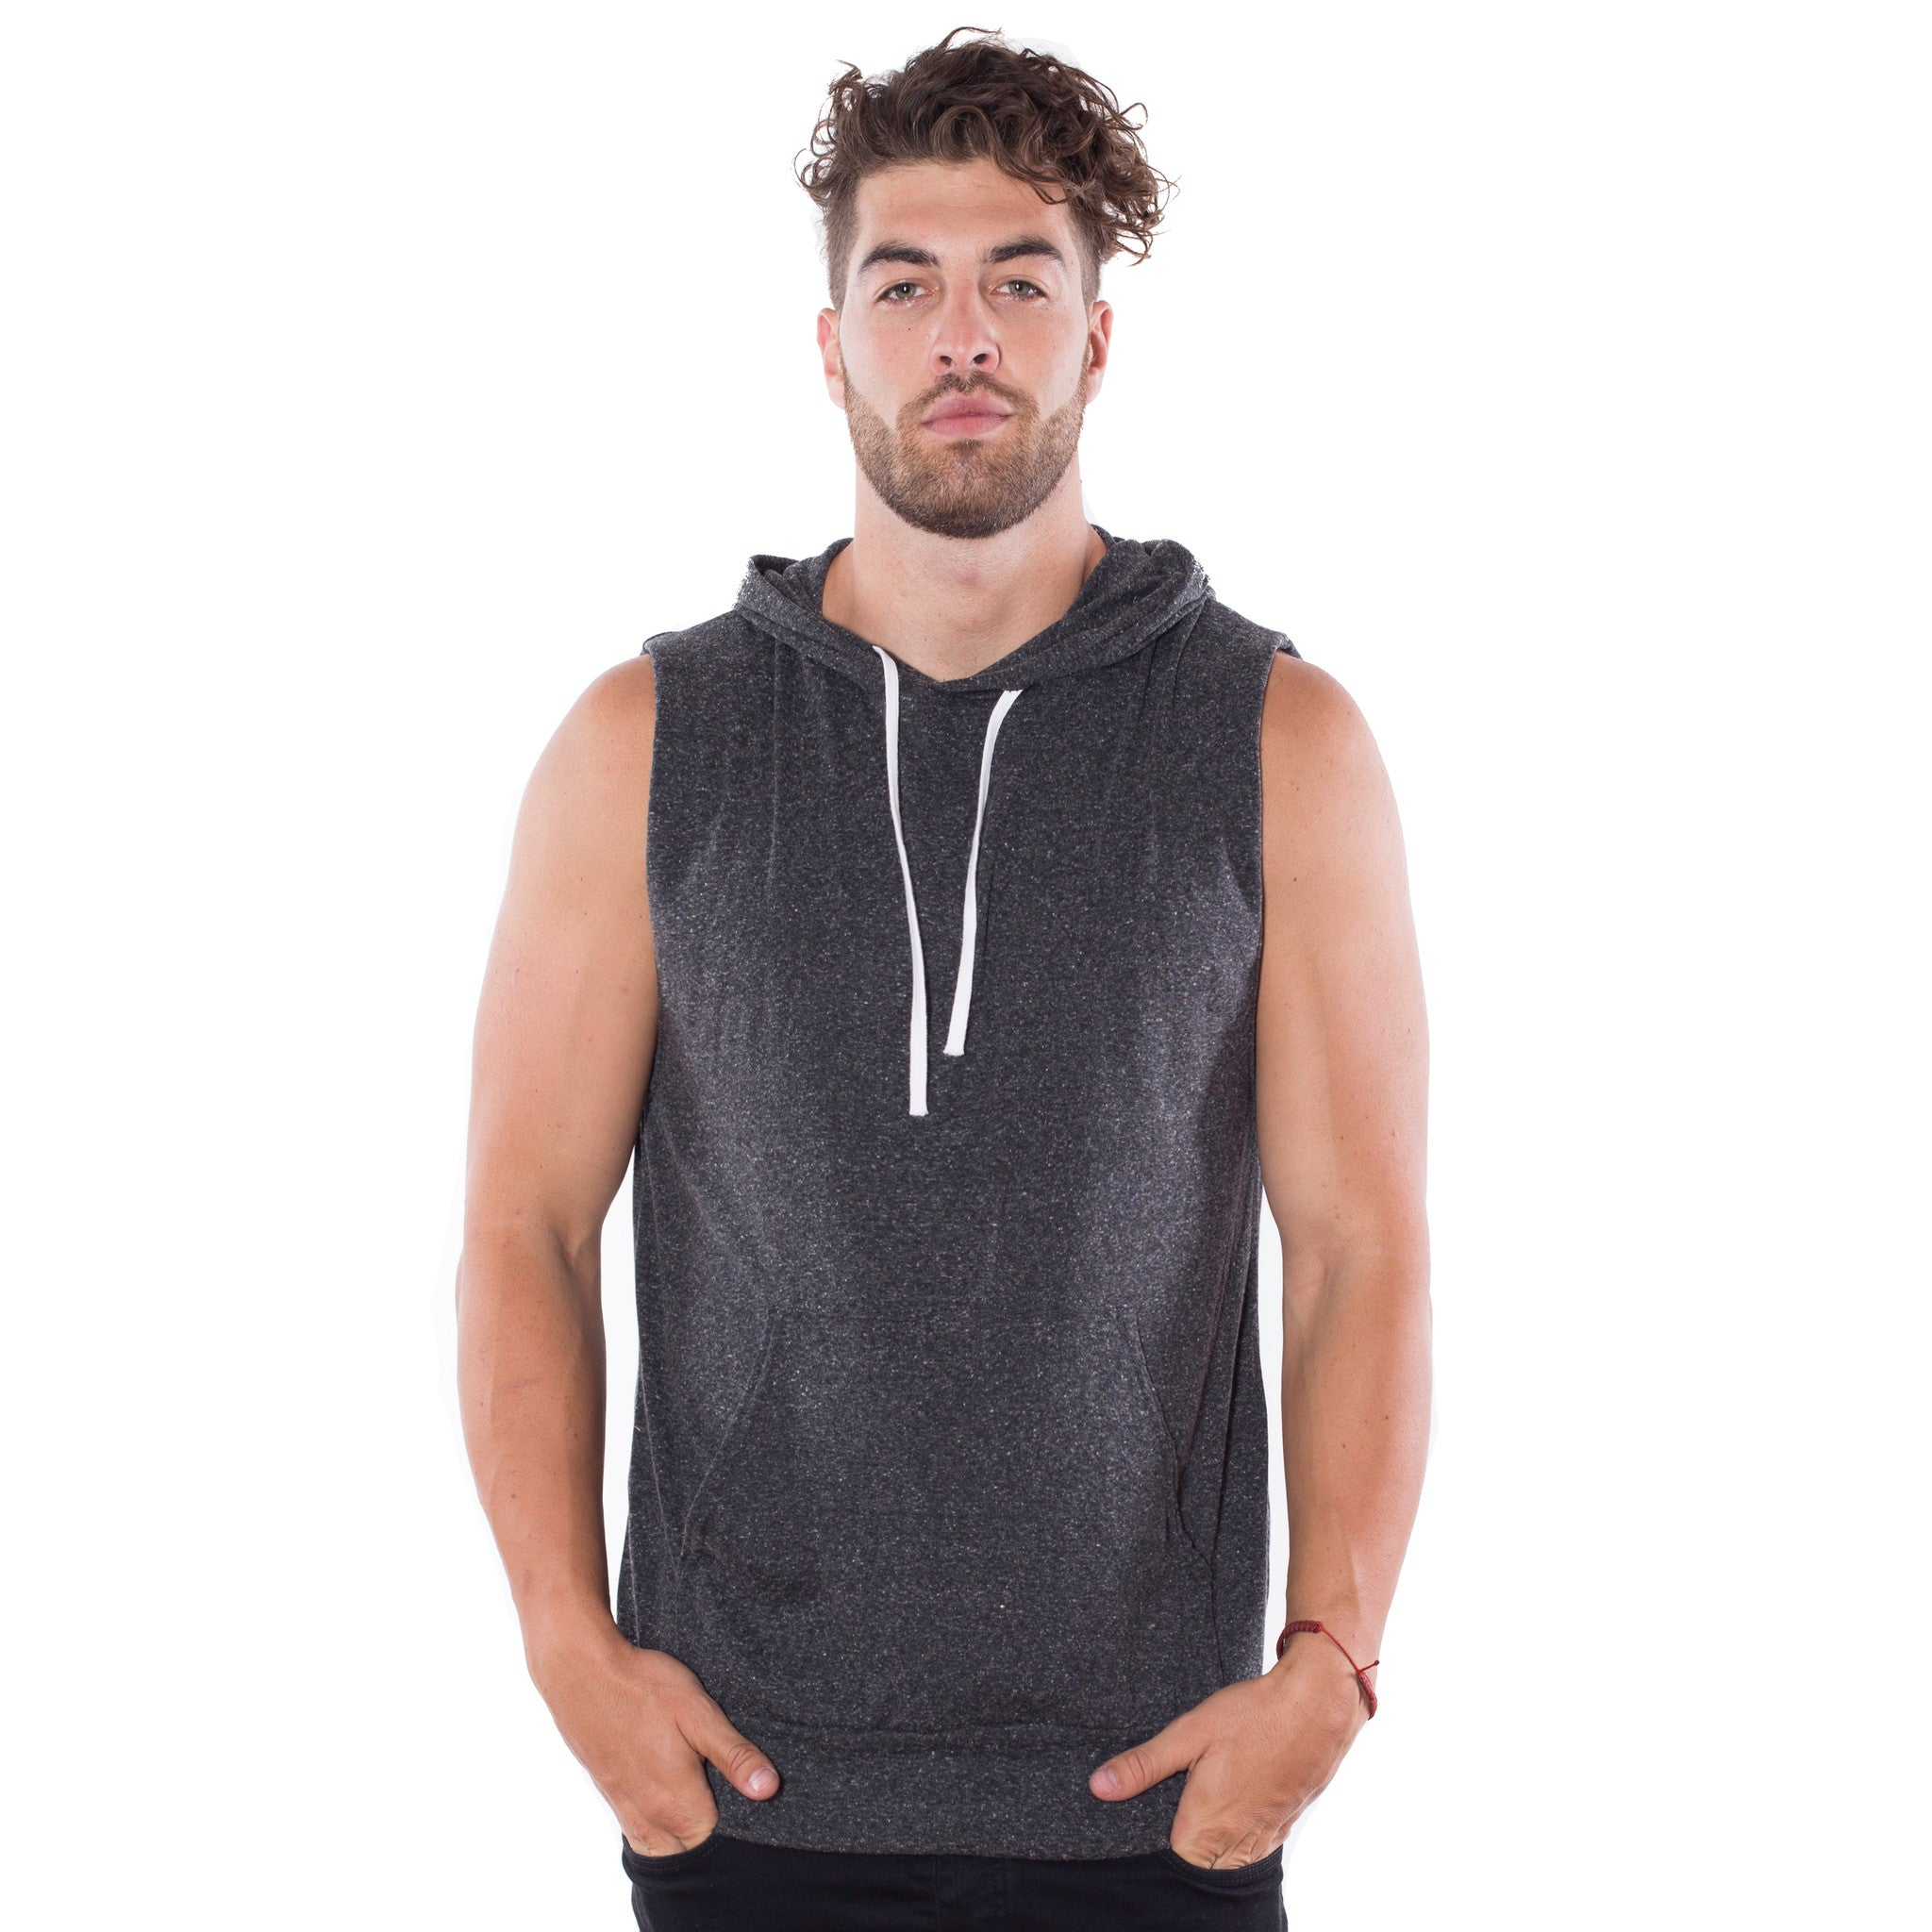 3537866faccec Unisex Sleeveless Pullover Hoodie - Over The Limit Apparel